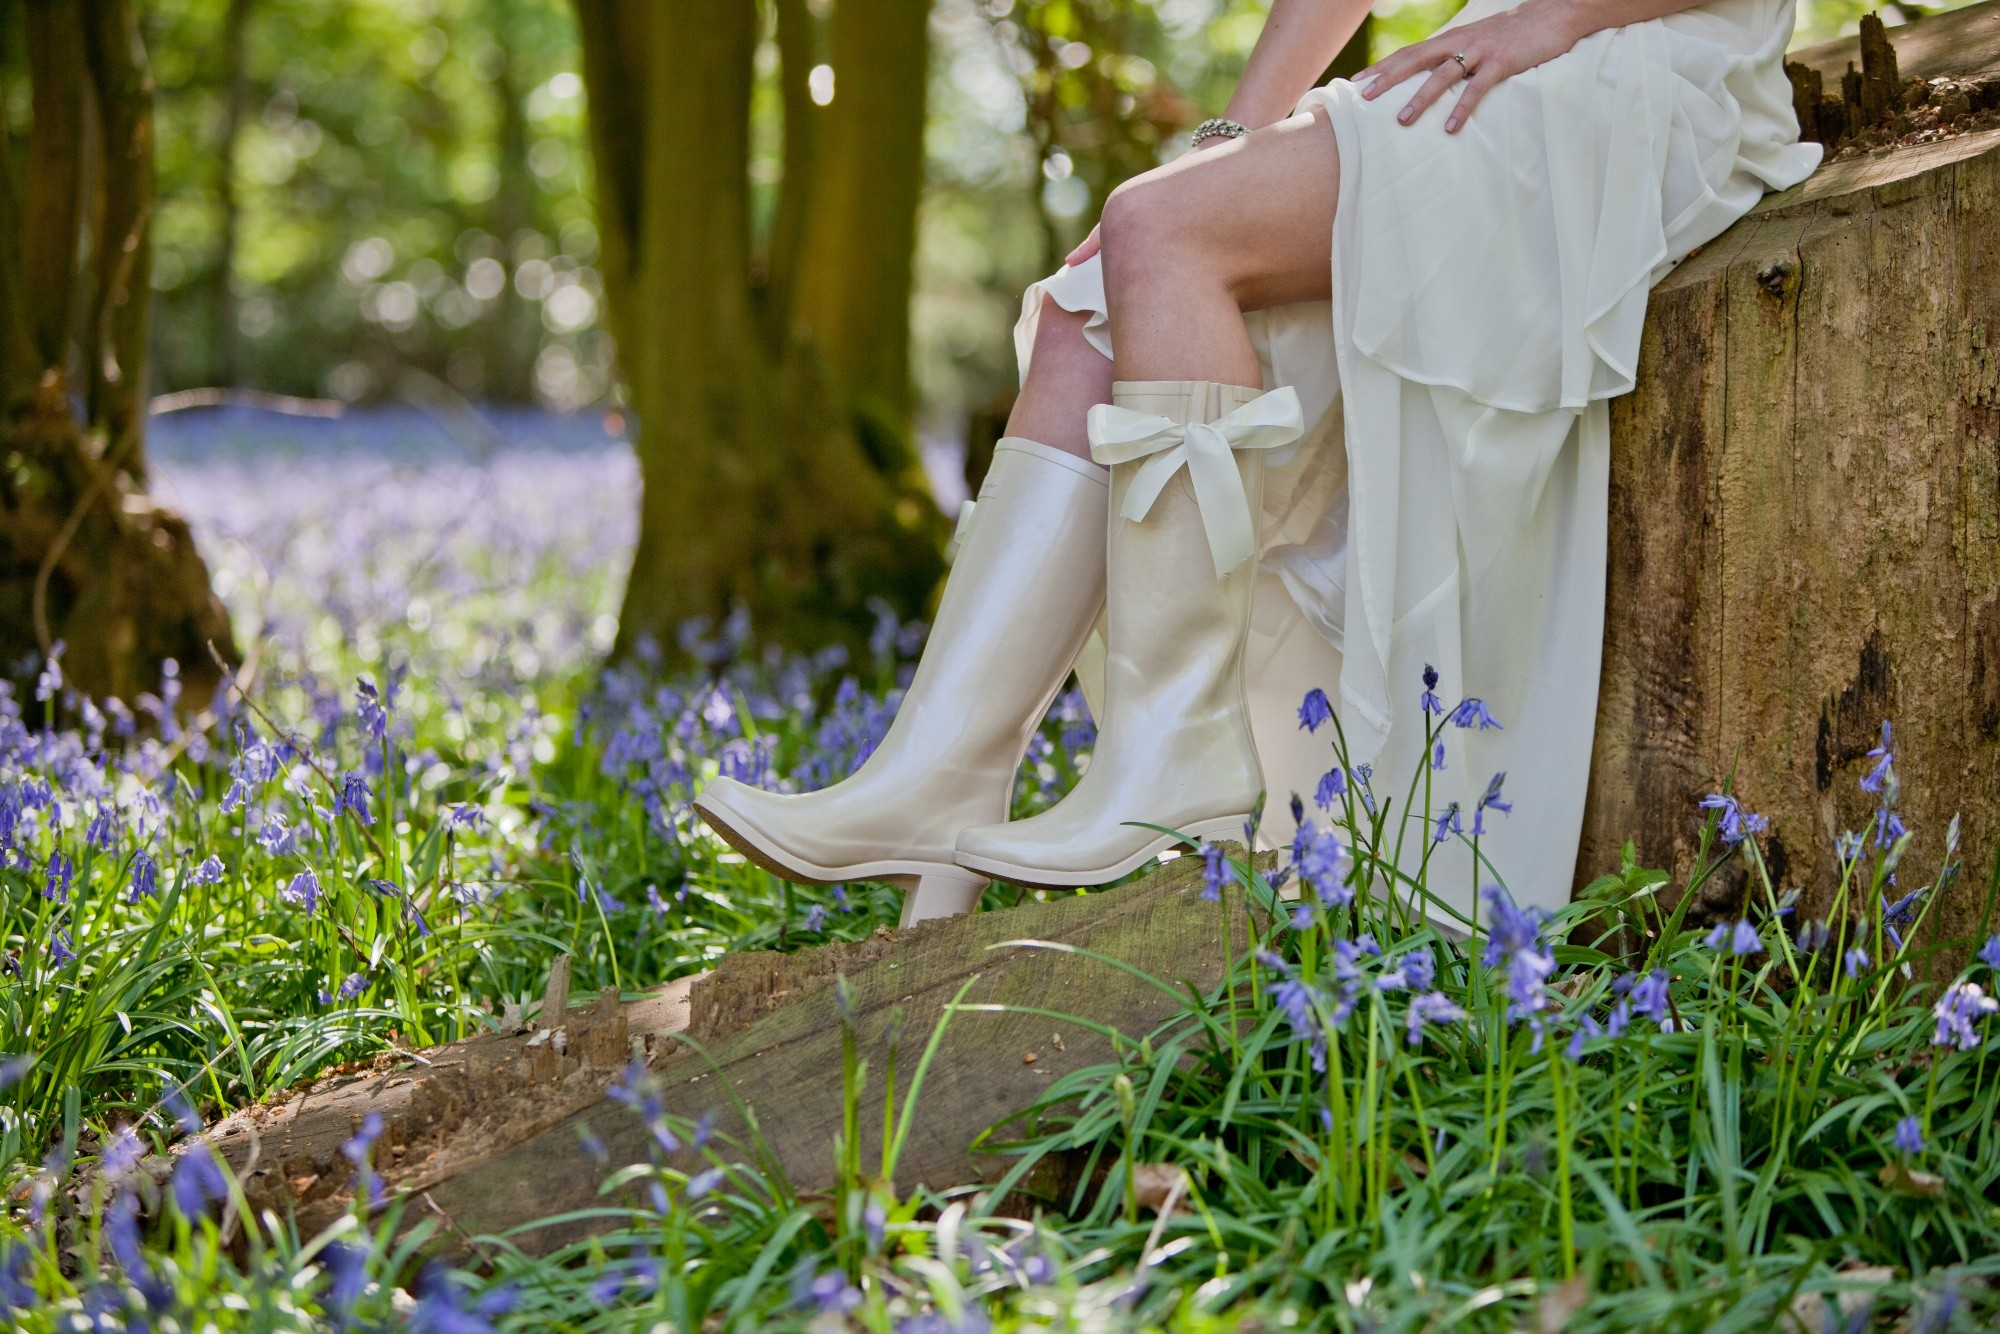 Weddington Boots will add wedding style to even the wettest day.